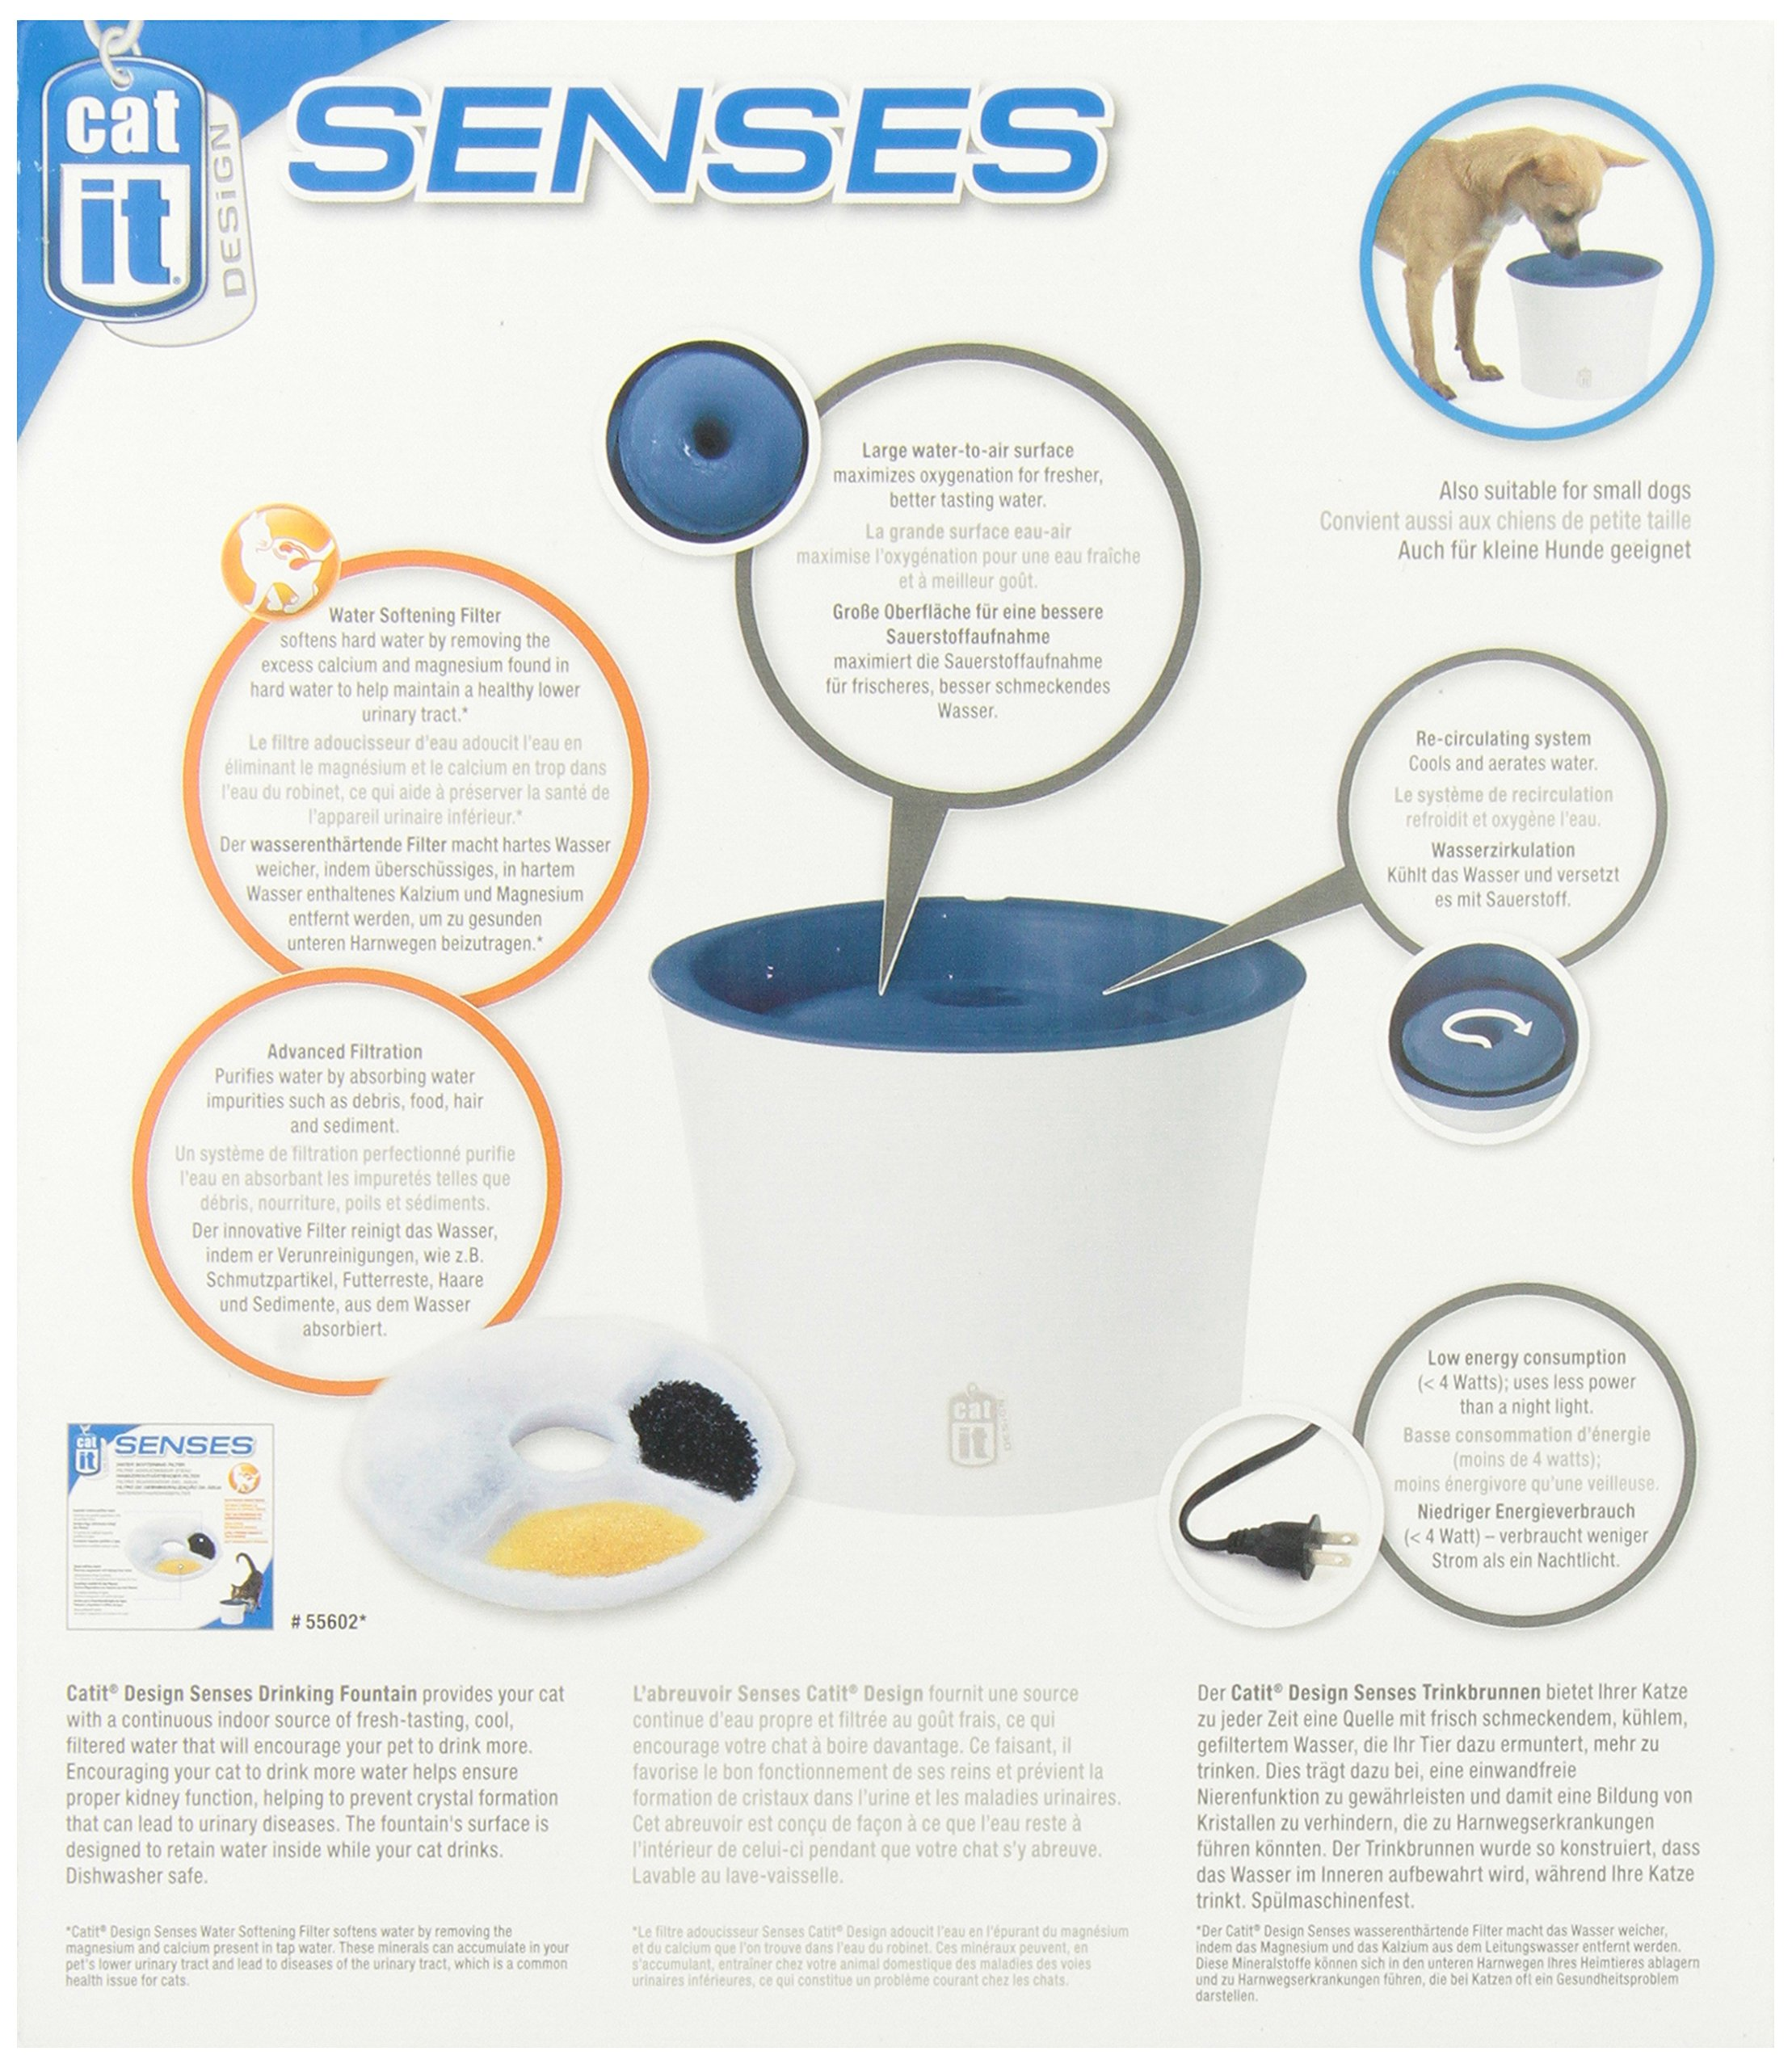 Catit Design Senses Fountain with Water Softening Cartridge, 3L